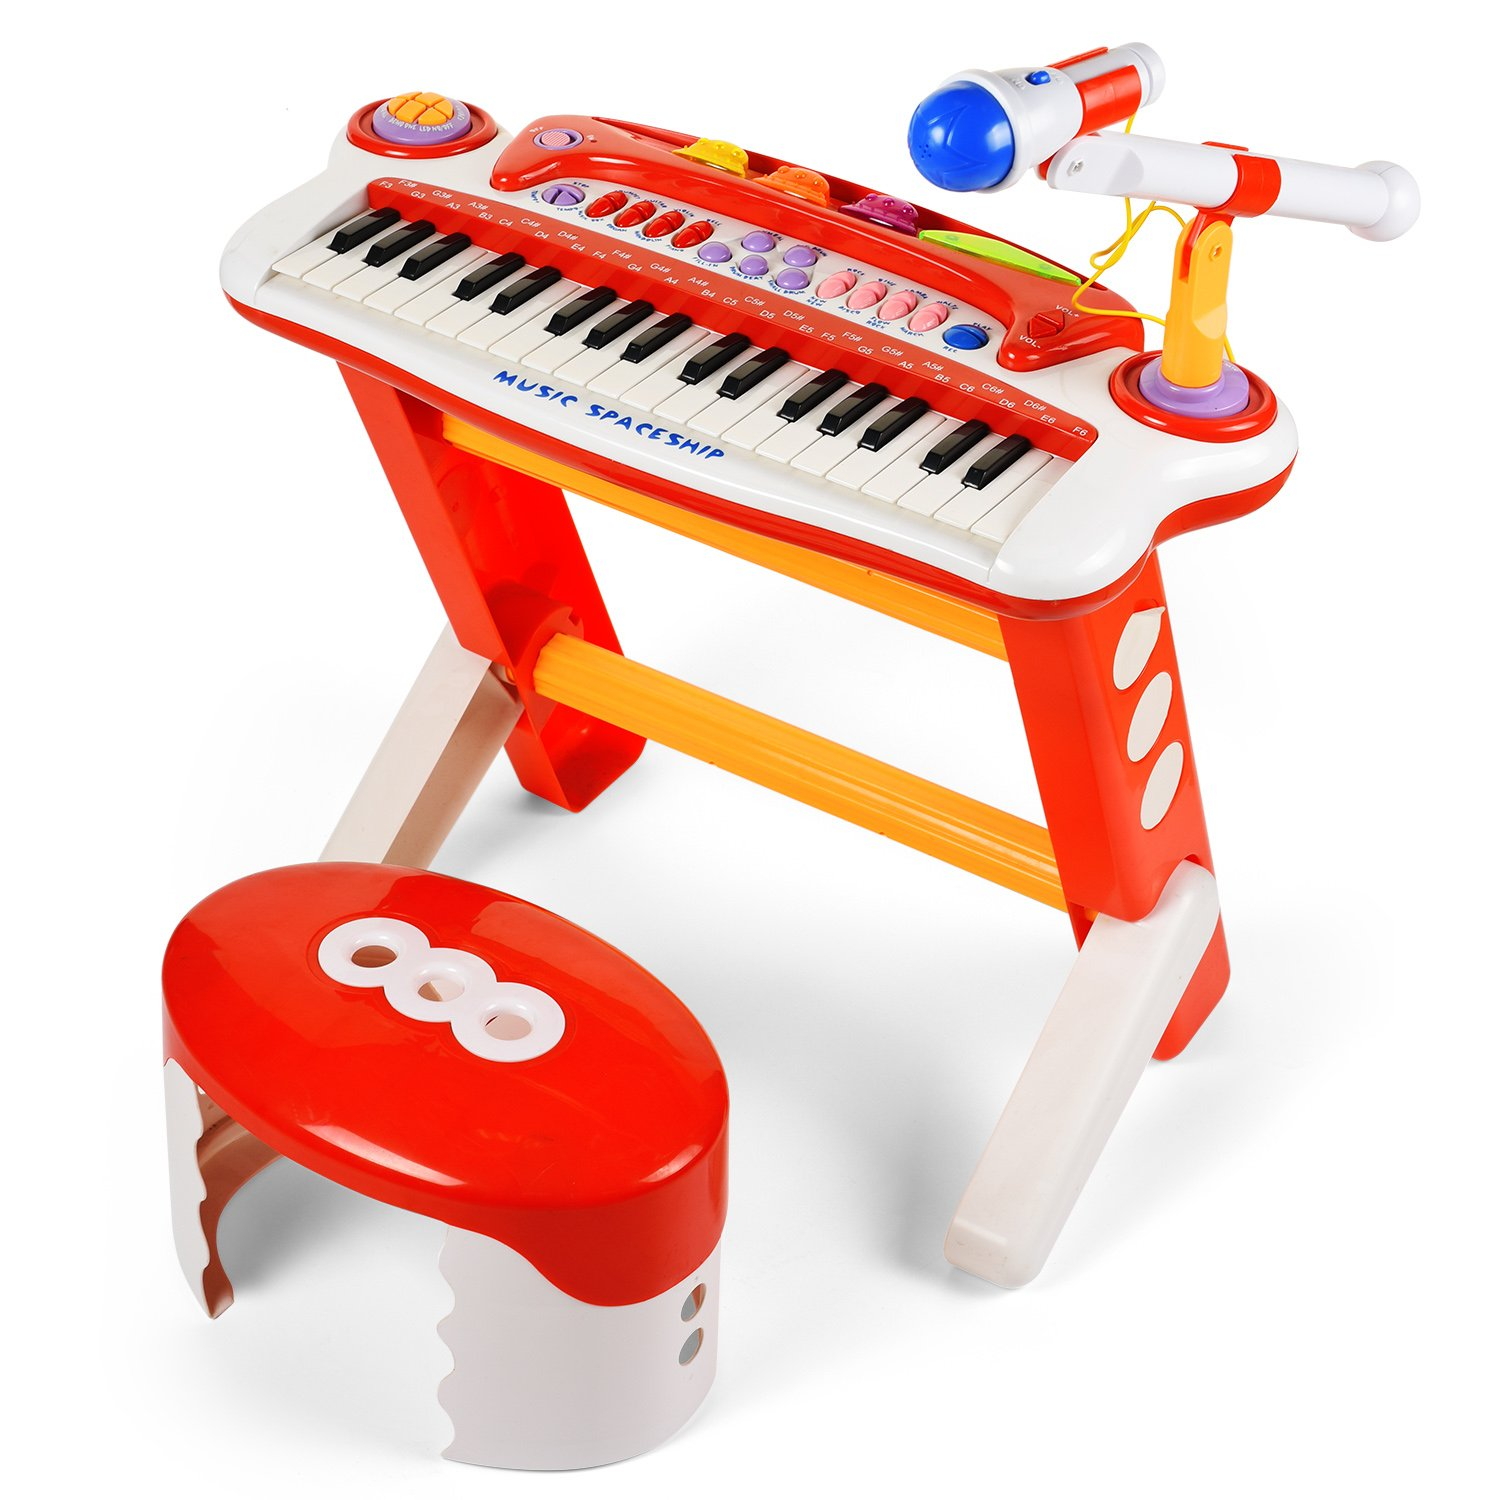 37 Keys Musical Toy Keyboard Instrument Electronic Organ for Kids by BAOLI